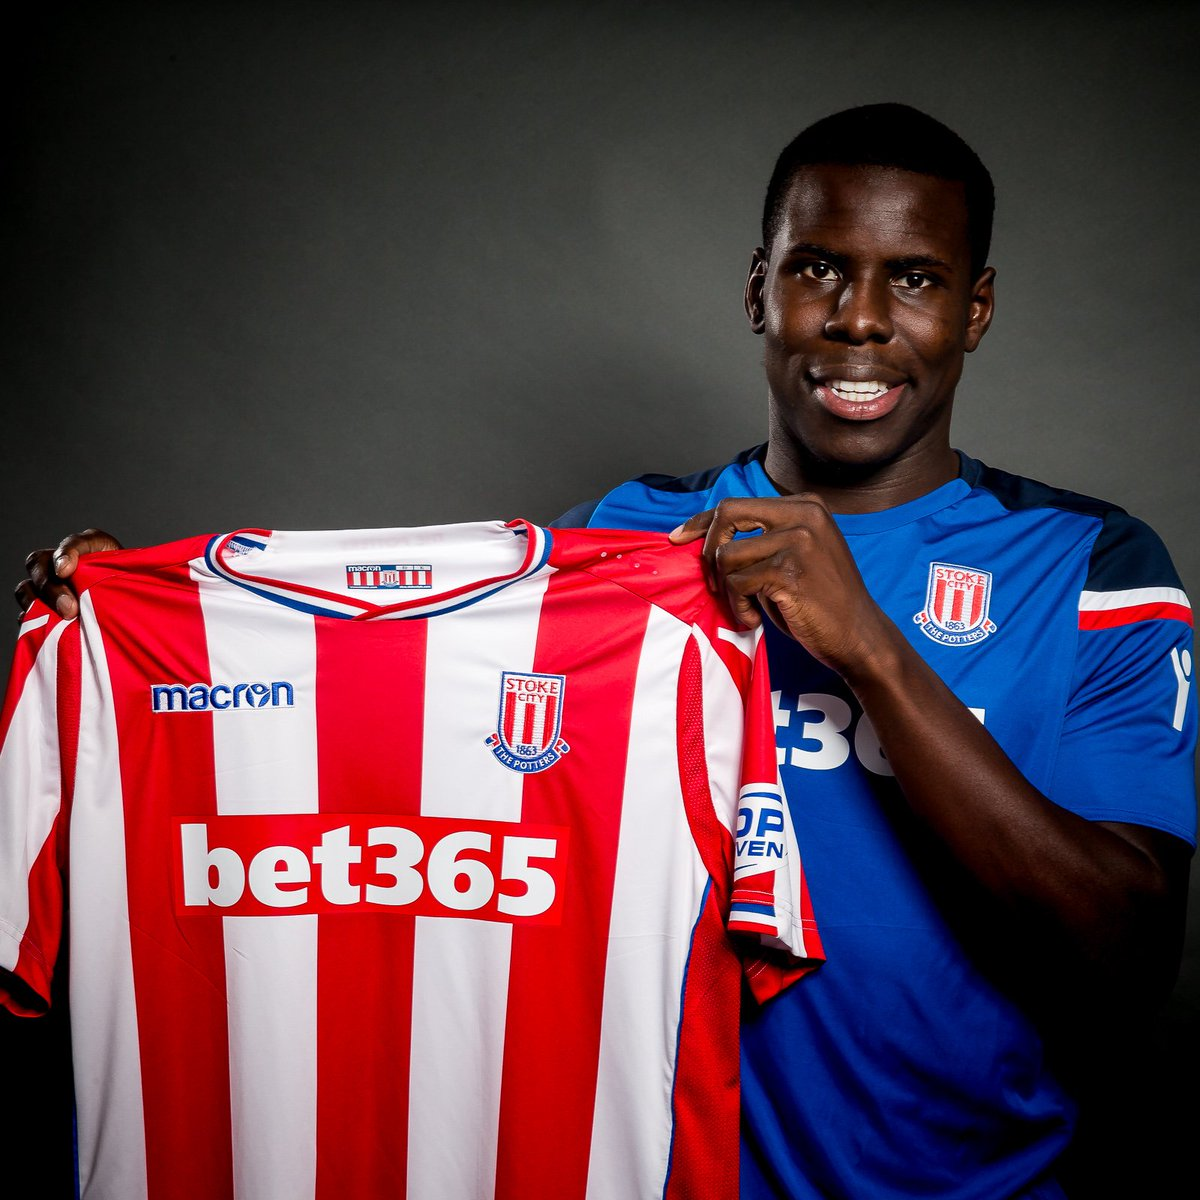 Kurt Zouma, 22, has signed a new six-year deal at @ChelseaFC and been loaned to @stokecity for the 2017-18 season #BBSports #Transfer <br>http://pic.twitter.com/0wfQTtvffQ